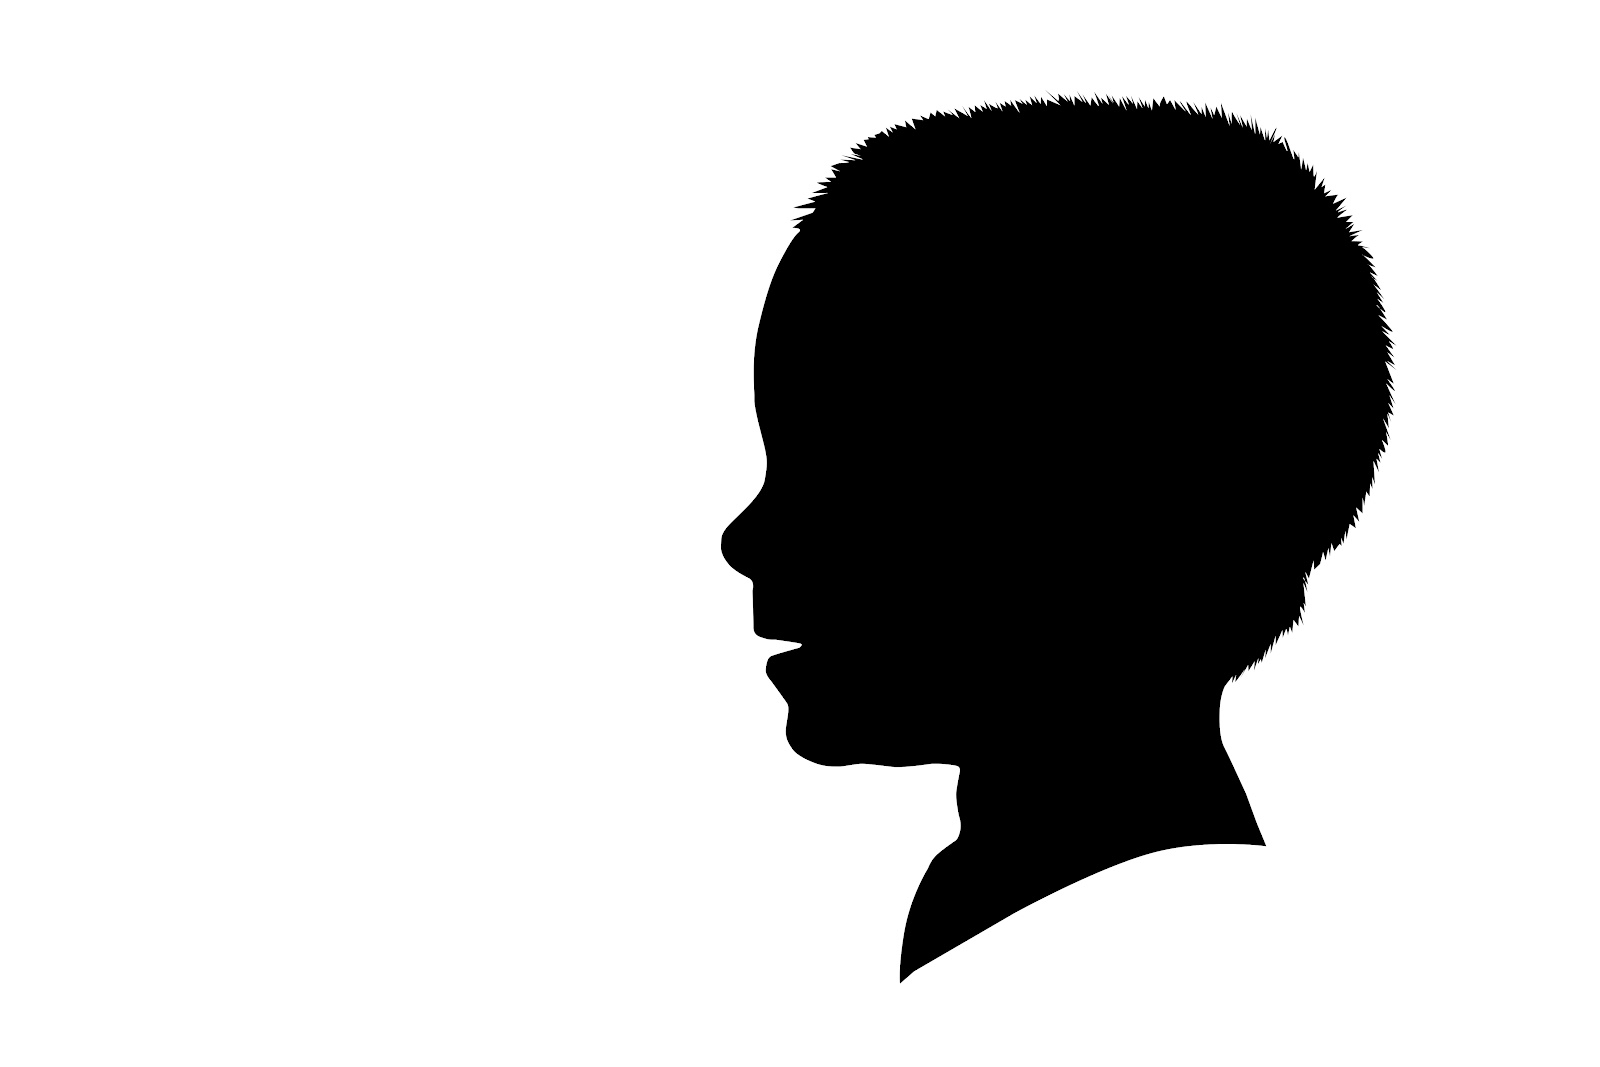 Child silhouette at getdrawings. Son clipart face to face image freeuse download